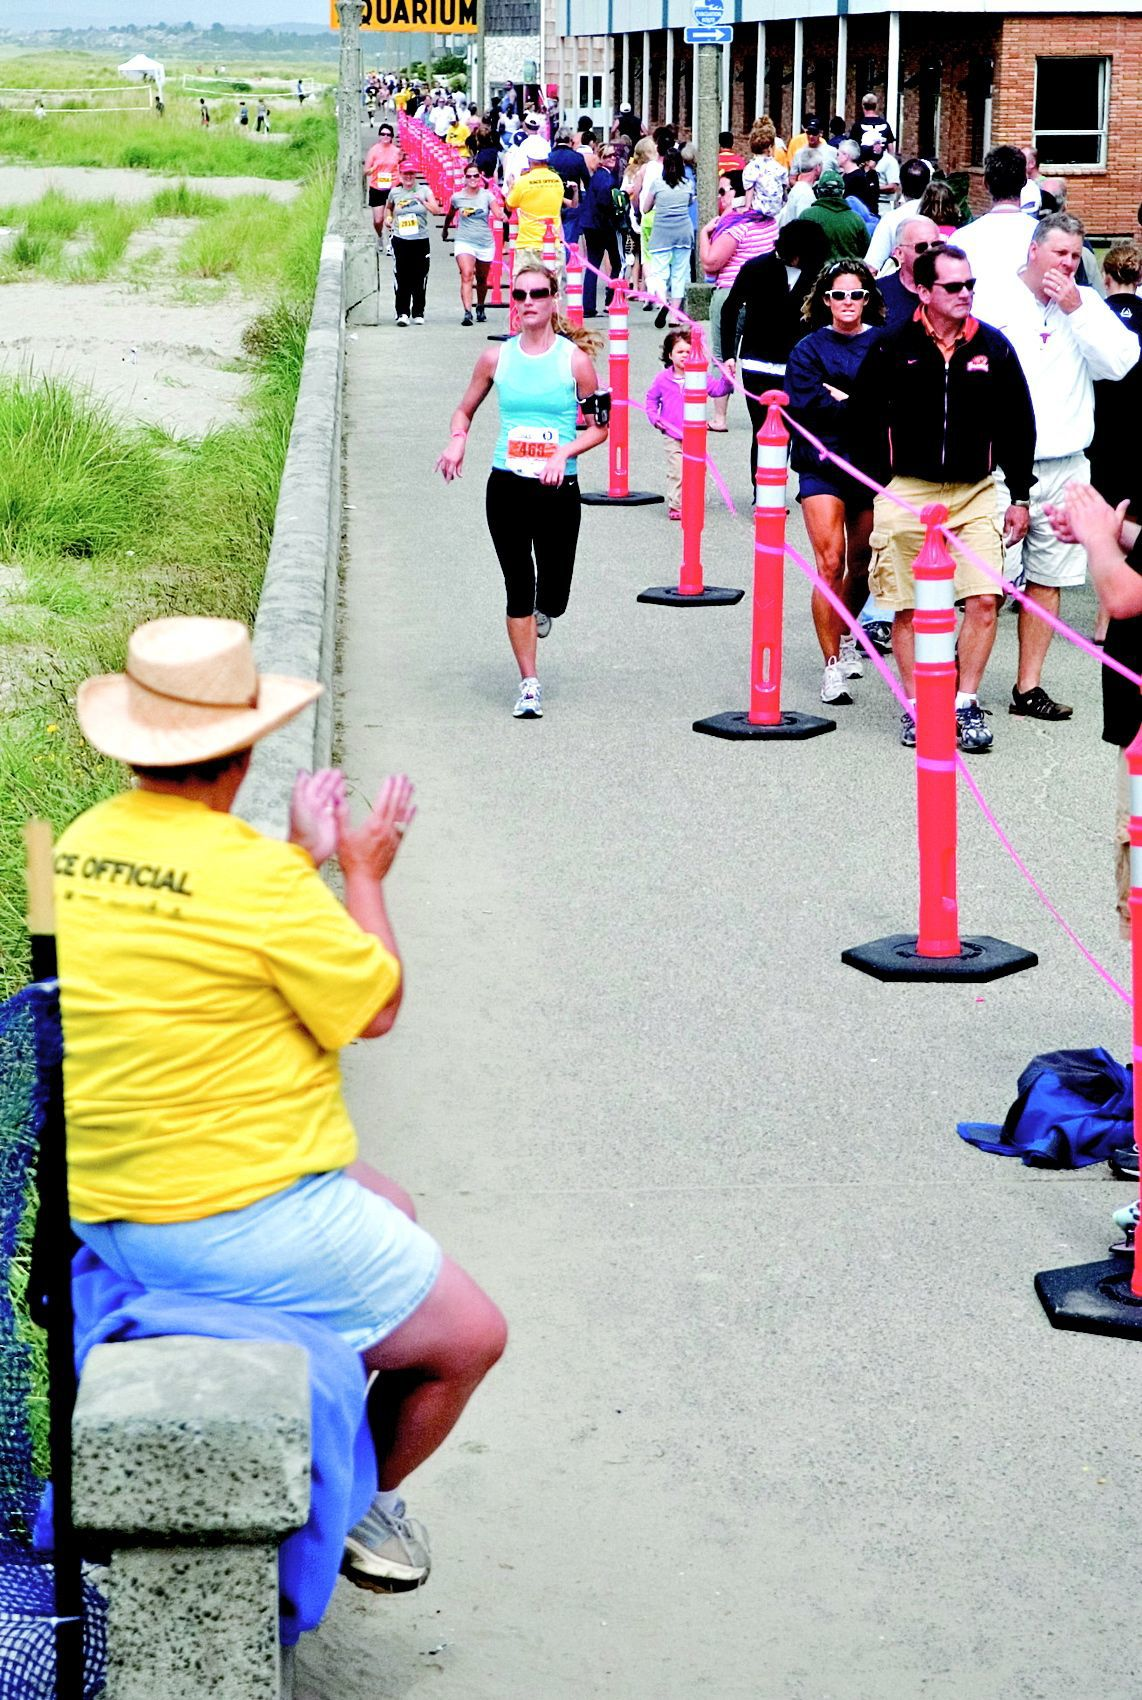 Seaside to start preparing for Hood to Coast finish party